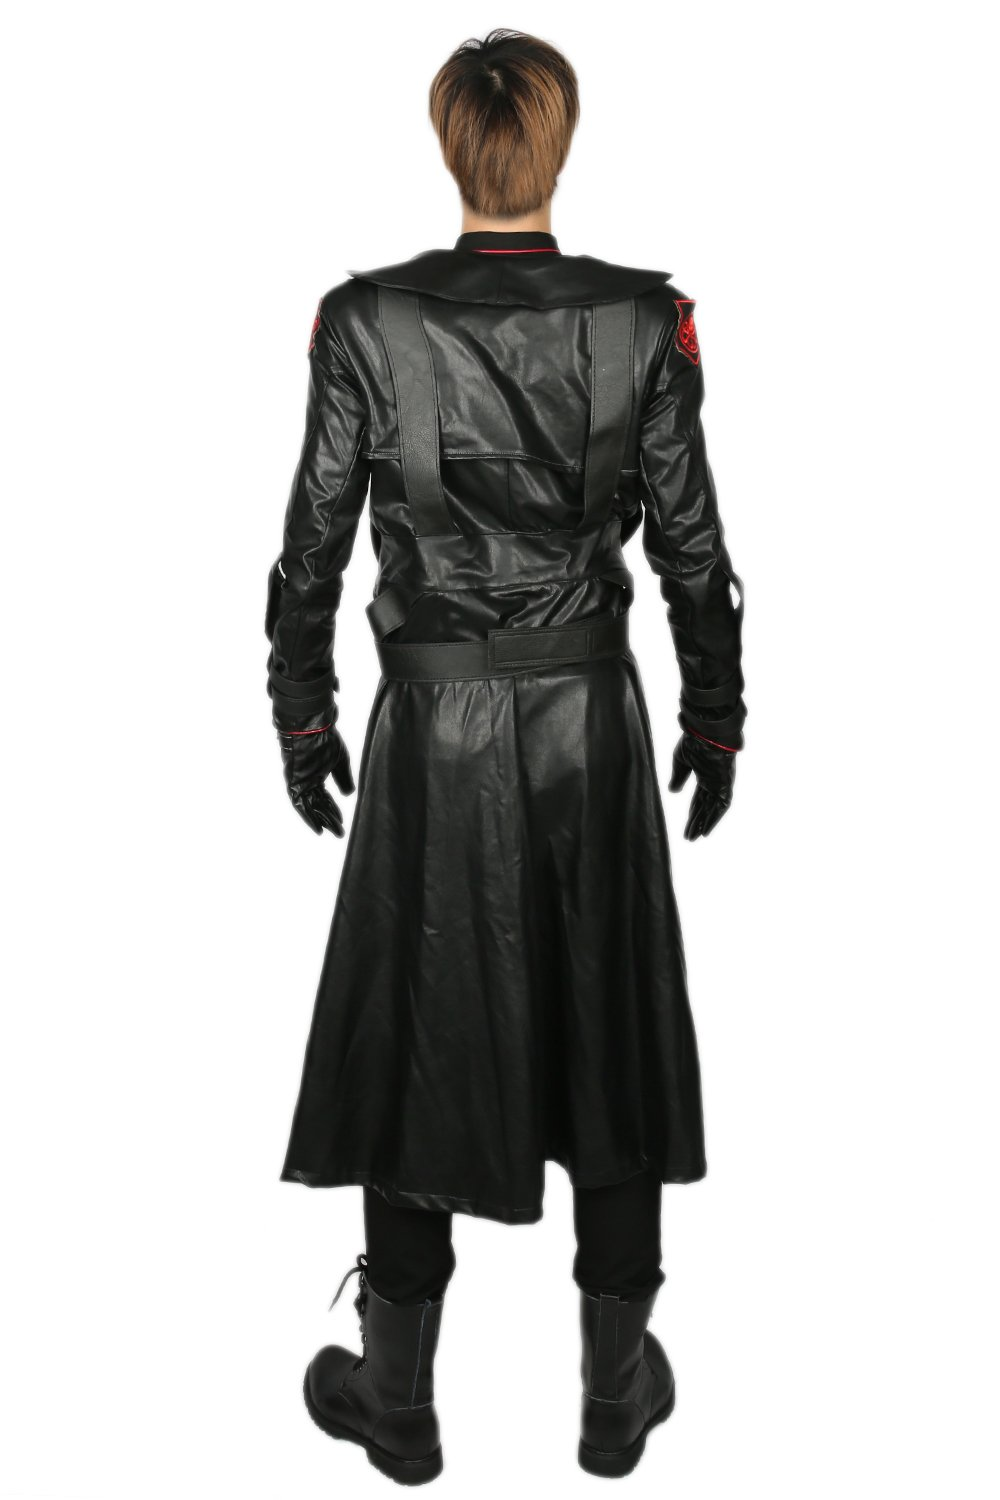 Adult Red Skull Cosplay Costume Outfit Suit for Halloween XL by xcostume (Image #2)